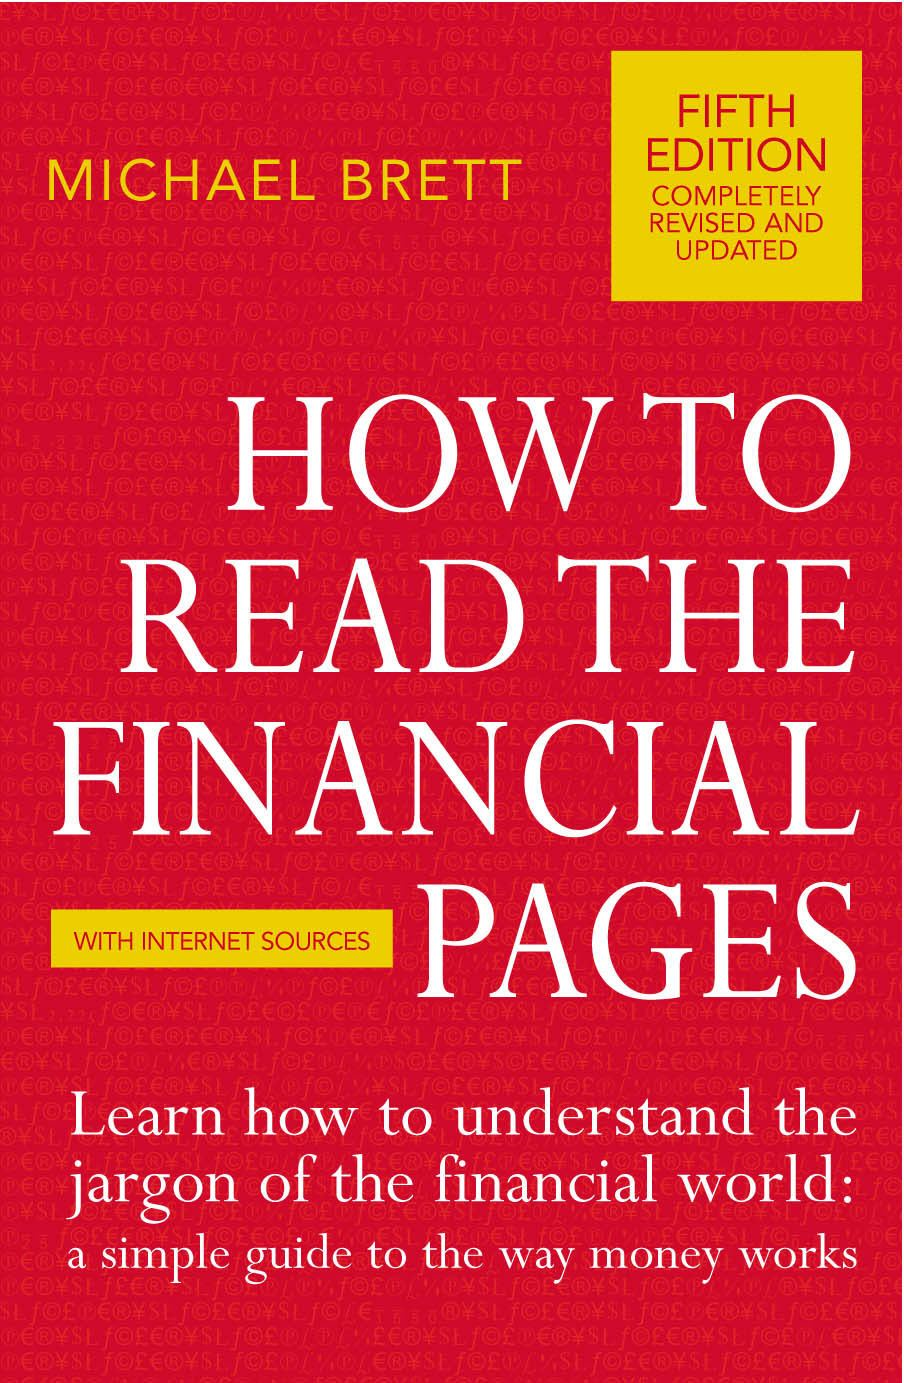 How To Read The Financial Pages By: Michael Brett